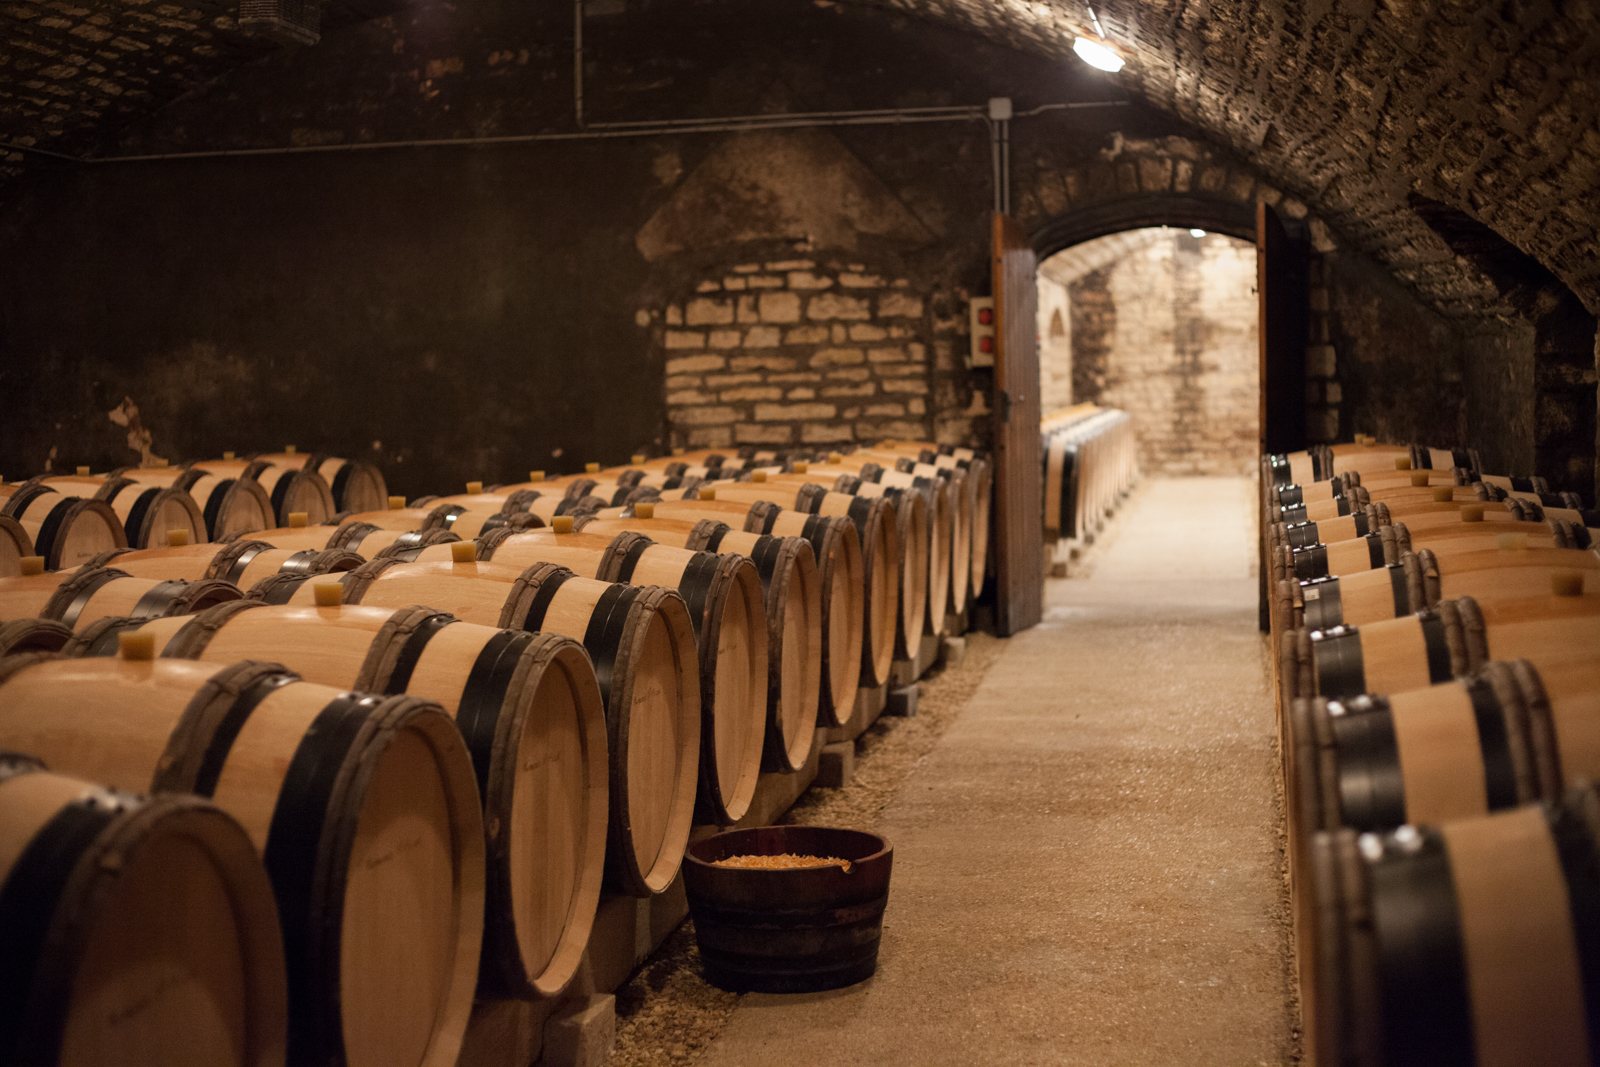 In the second of three rooms in the cellar at Domaine de la Romanée-Conti, the wines from Grand Cru Romanée-St-Vivant, Grands Echézeaux and Richebourgh rest. ©Kevin Day / Opening a Bottle